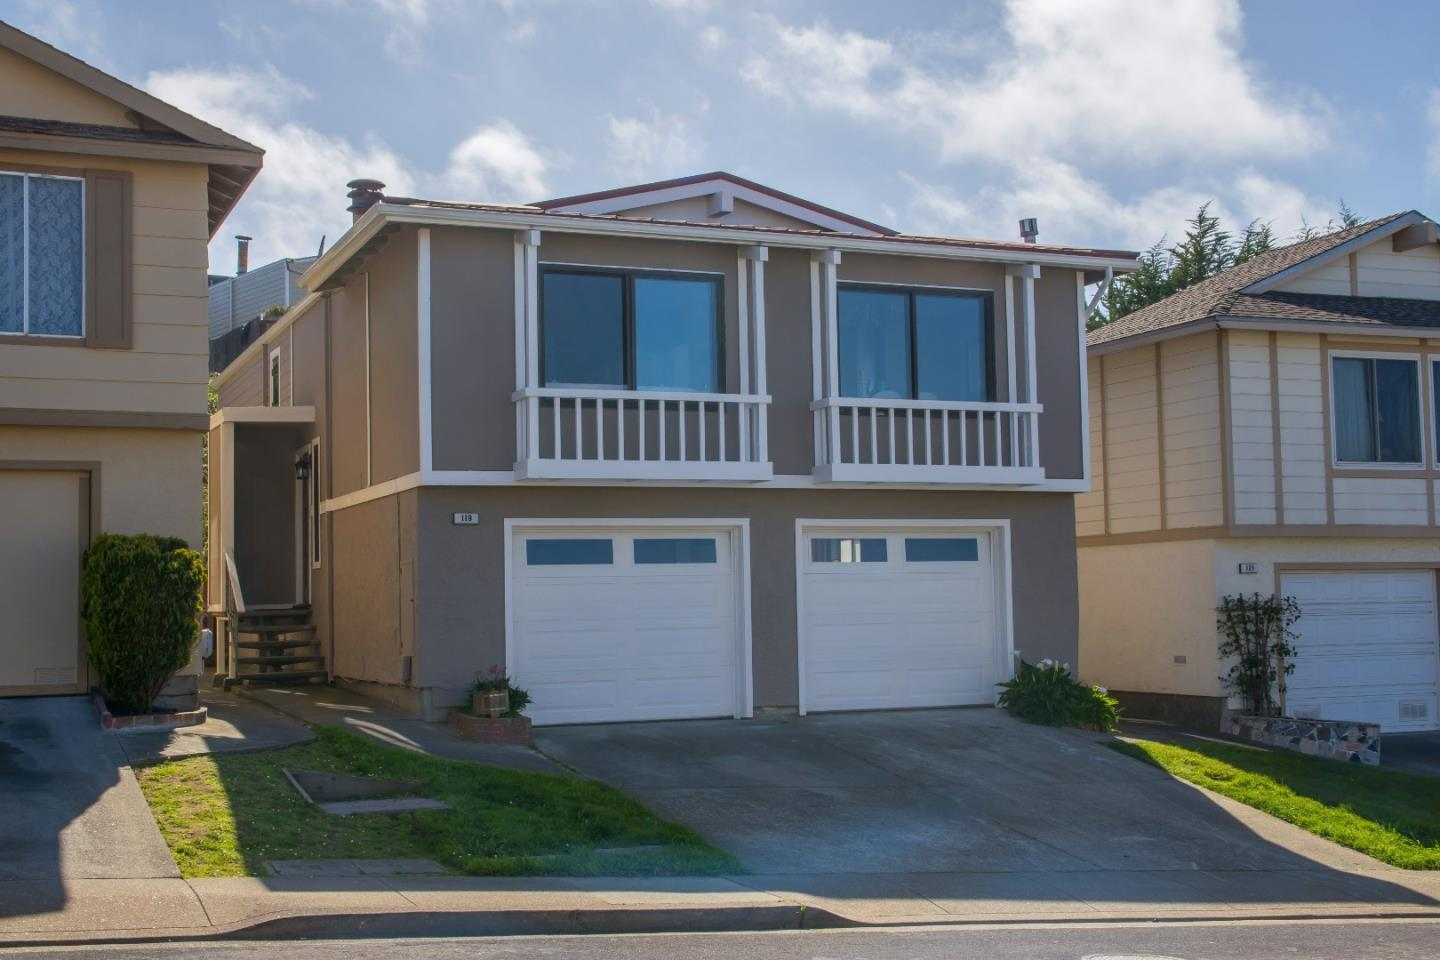 Single Family Home for Sale at 119 Lycett Circle 119 Lycett Circle Daly City, California 94015 United States